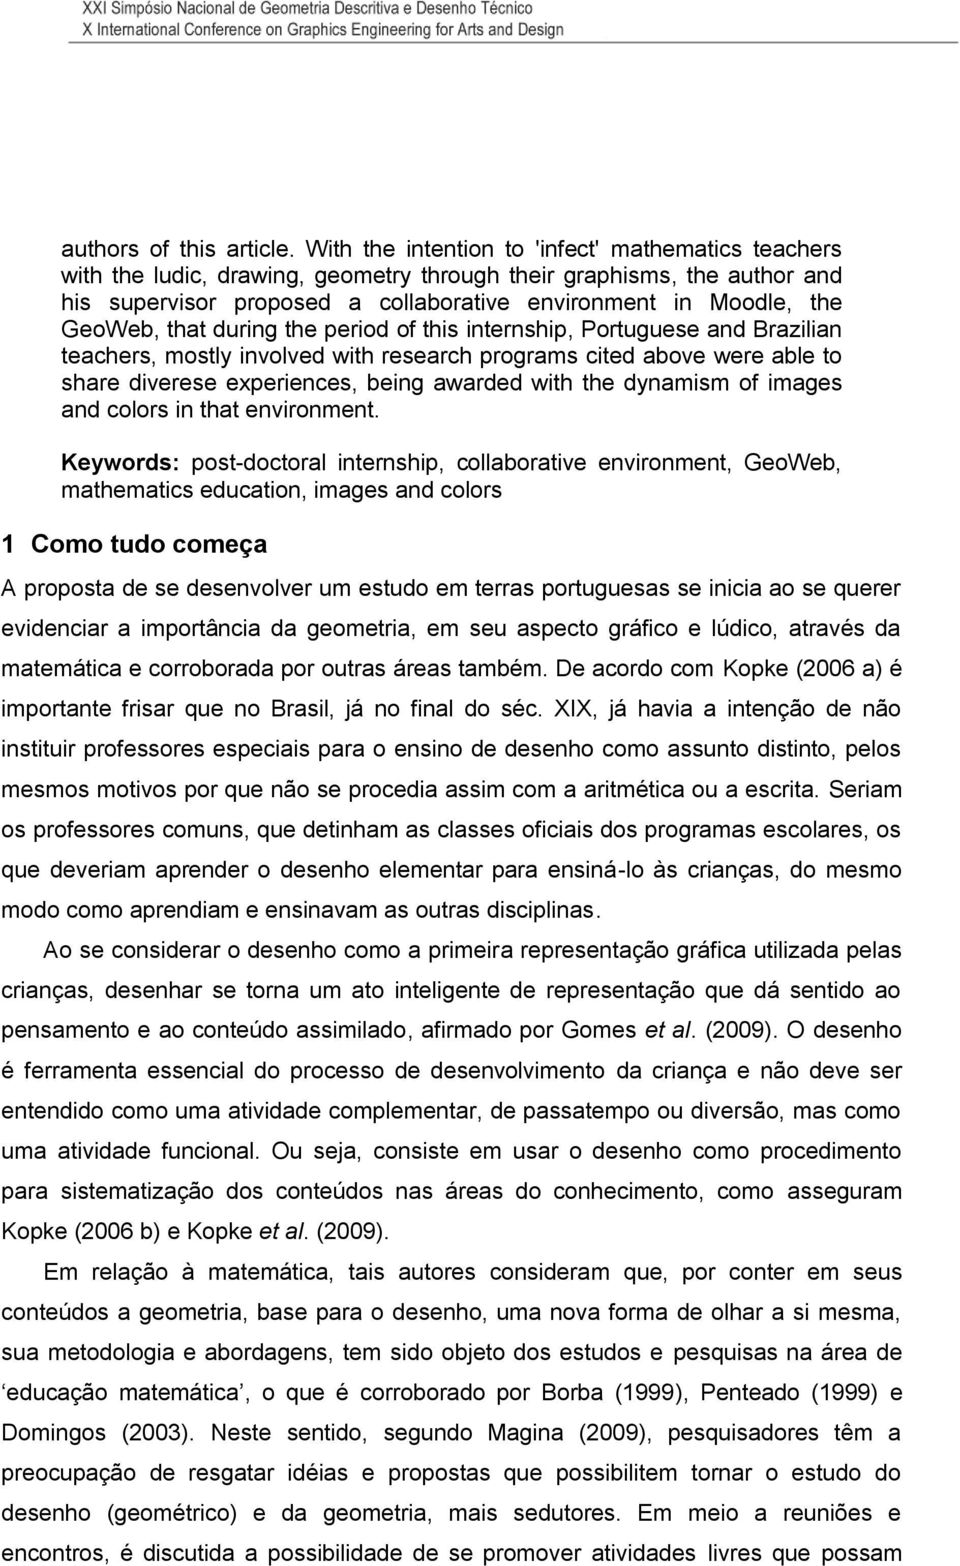 GeoWeb, that during the period of this internship, Portuguese and Brazilian teachers, mostly involved with research programs cited above were able to share diverese experiences, being awarded with